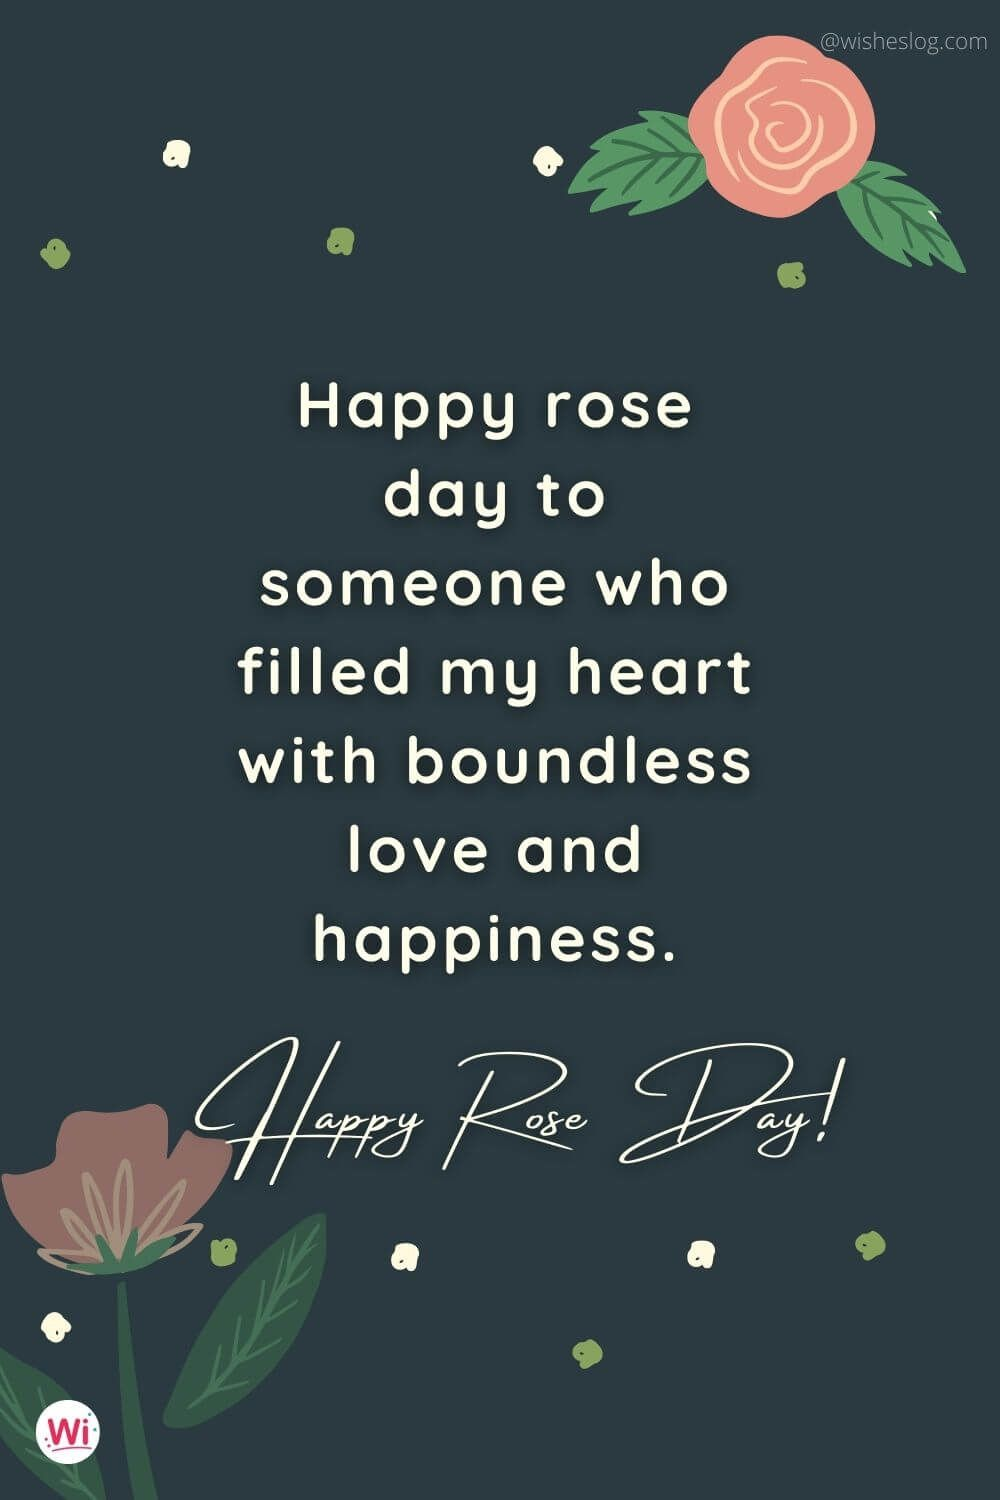 Happy Rose Day Quotes For Husband In 2021 Rose Day Wishes Happy Rose Day Quotes Happy Rose Day